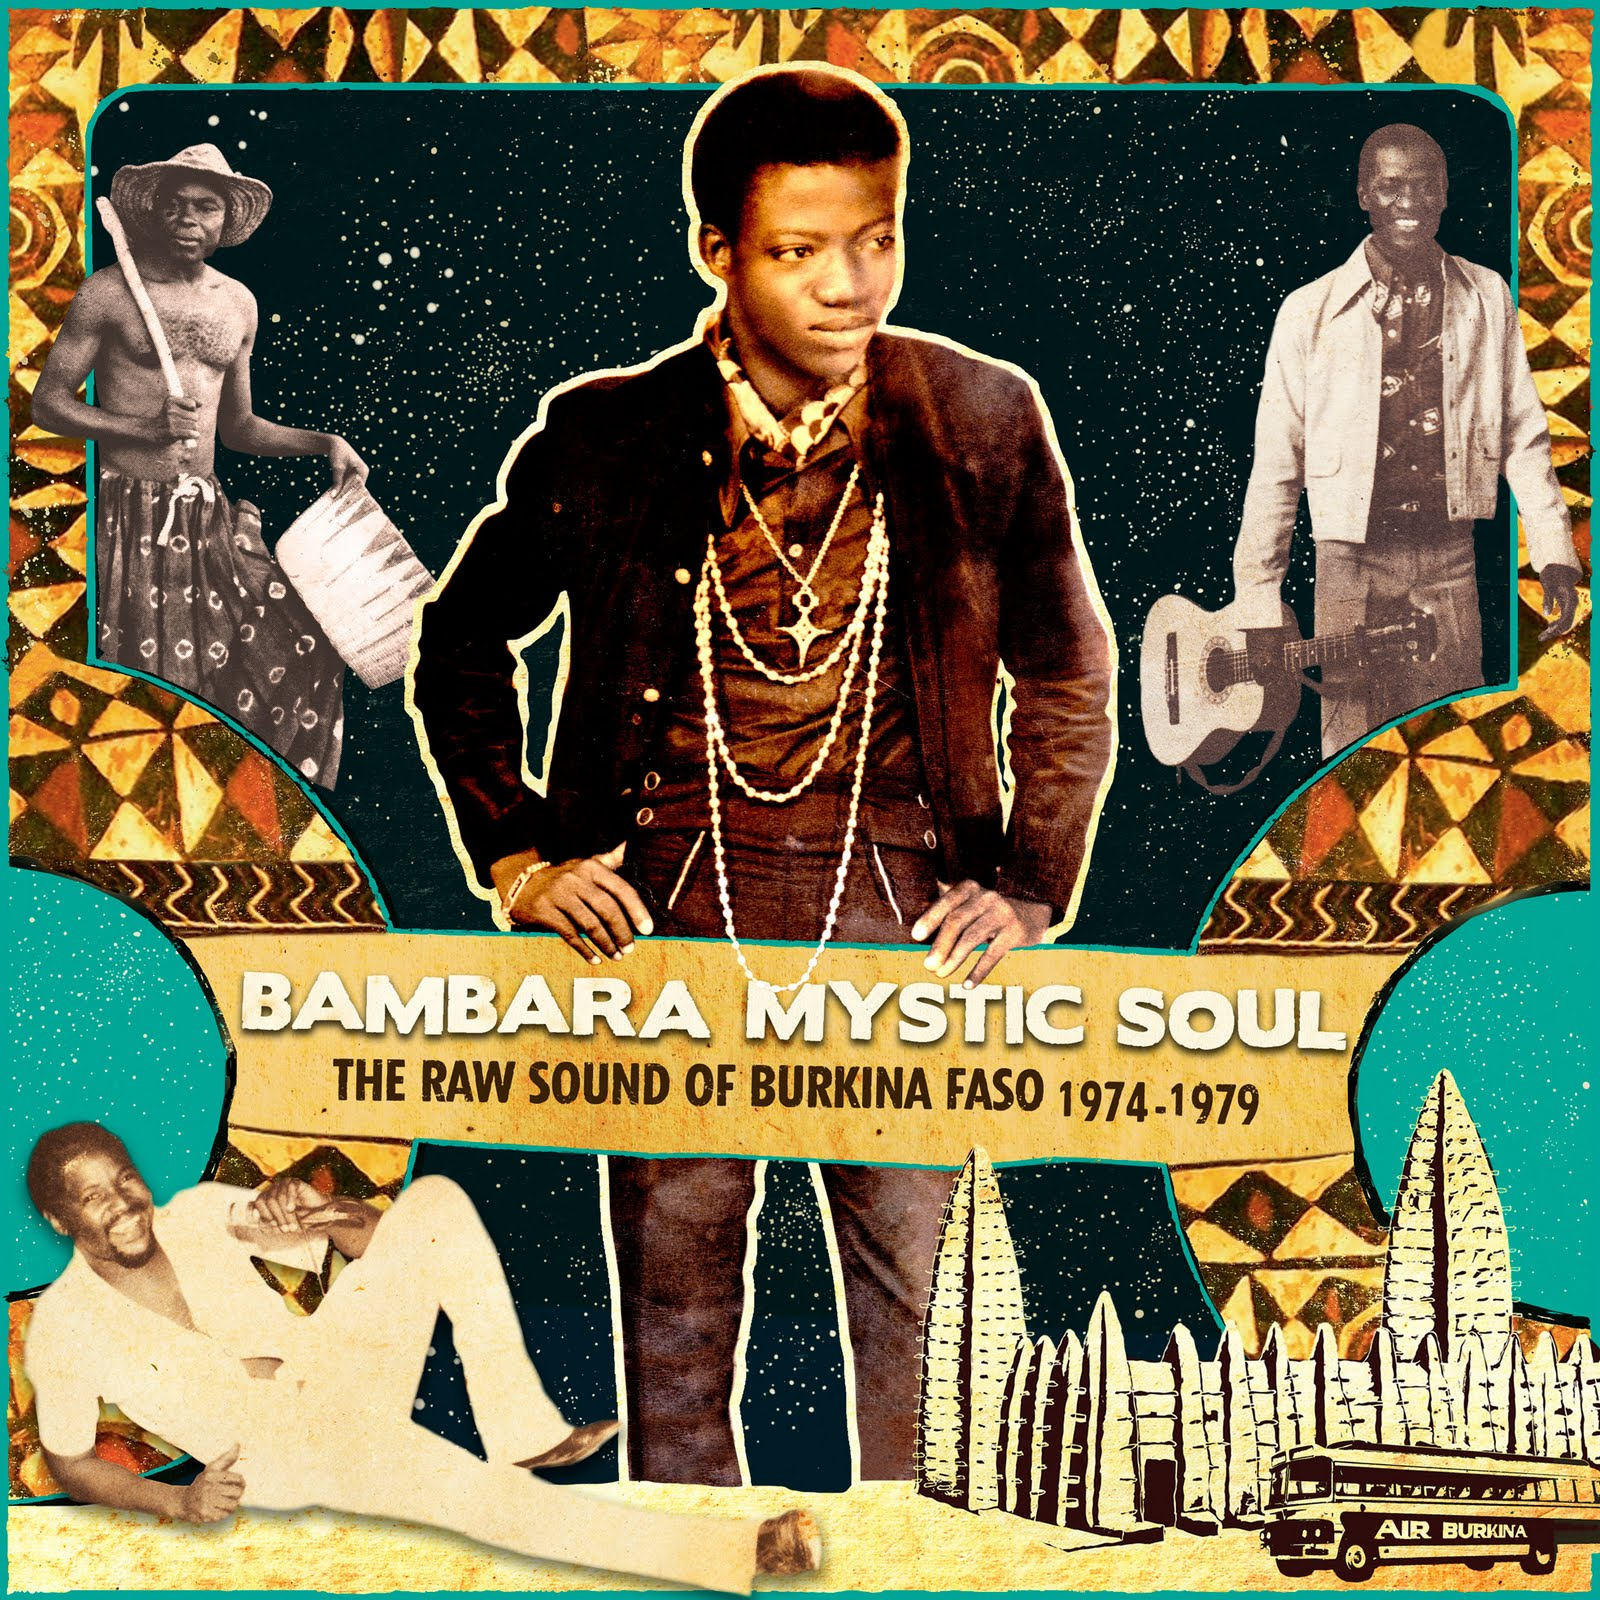 Bambara Mystic Soul - The Raw Sound ofBurkina Faso 1974-1979  Release Date: October 10, 2011 Label: Analog Africa  SERVICE: Restoration, Mastering SOURCE MATERIAL: LP and 45 rpm records NUMBER OF DISCS: 1CD, 2 LP GENRE: Afro-Beat FORMAT: CD and LP